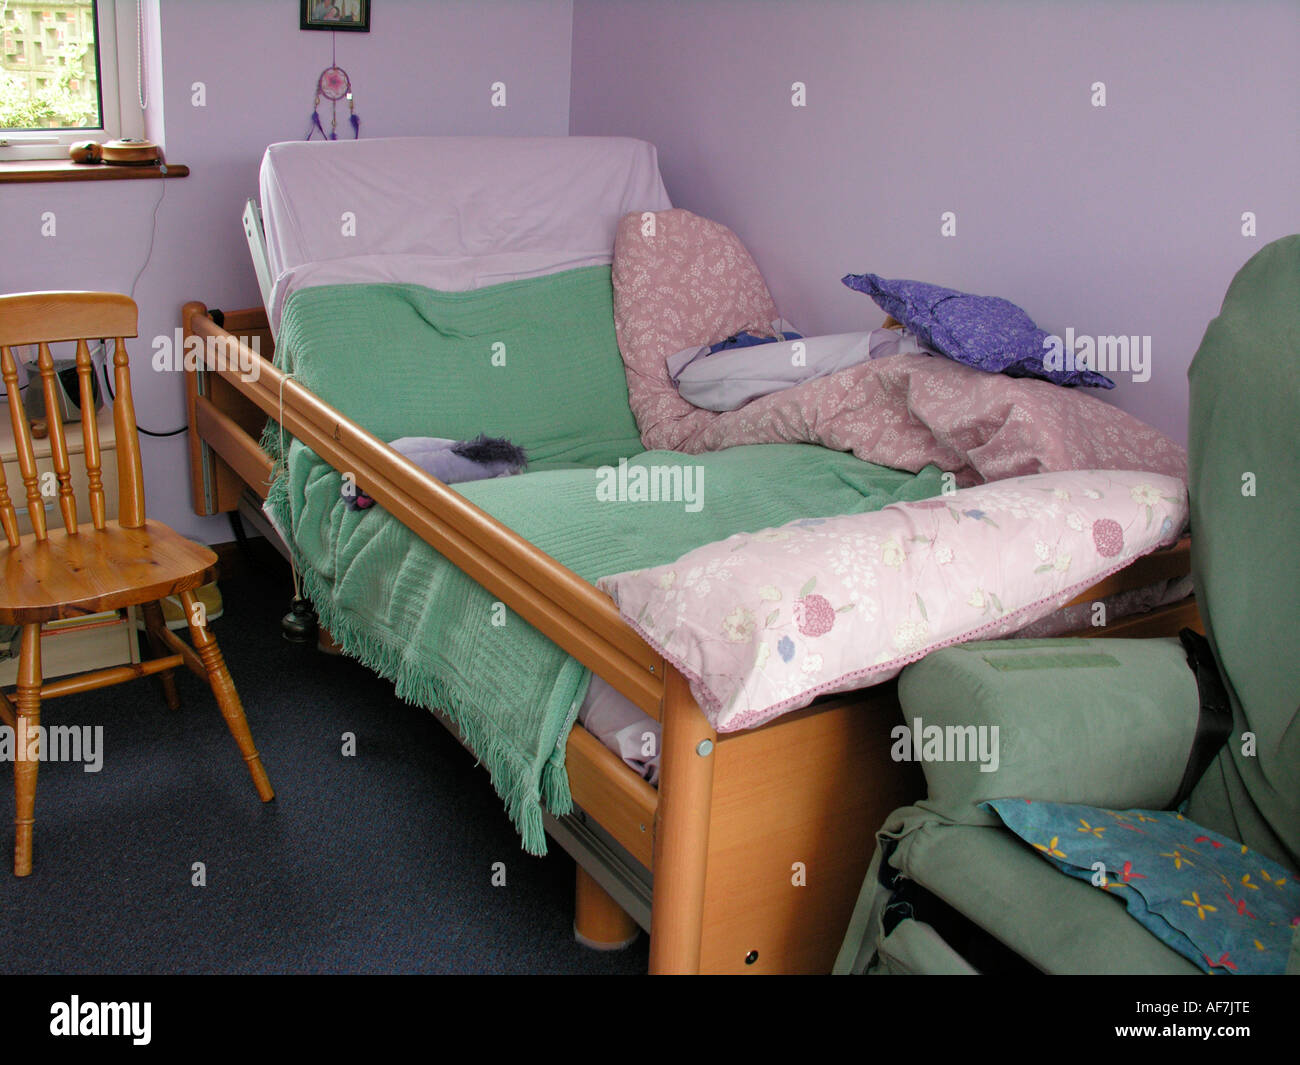 Disabled Person S Adjustable Bed With Bell Attached For Summoning Stock Photo 7918861 Alamy